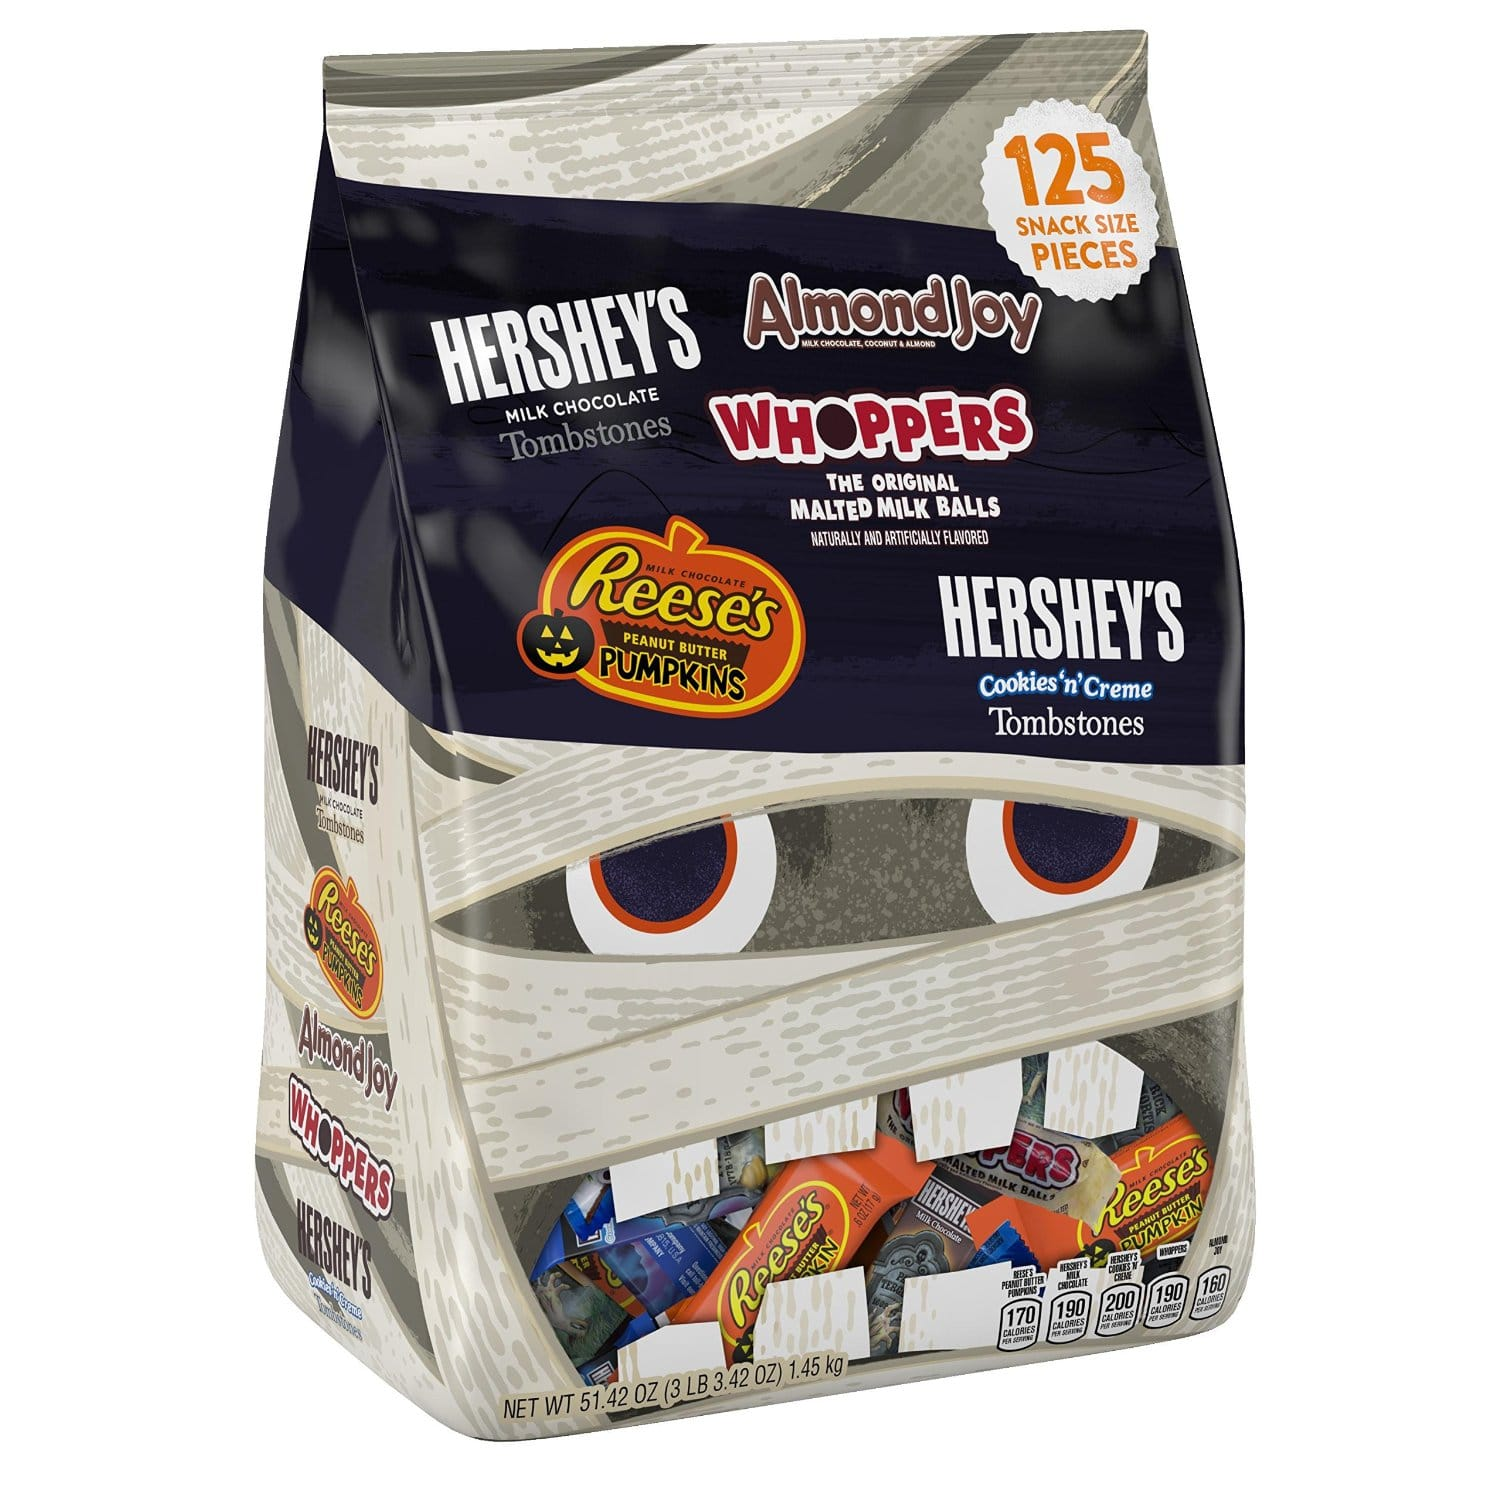 51.42 oz Hershey's Halloween Snack Size Assortment (125-Pieces) $9.74 + free shipping w/ prime @ Amazon *back in stock*